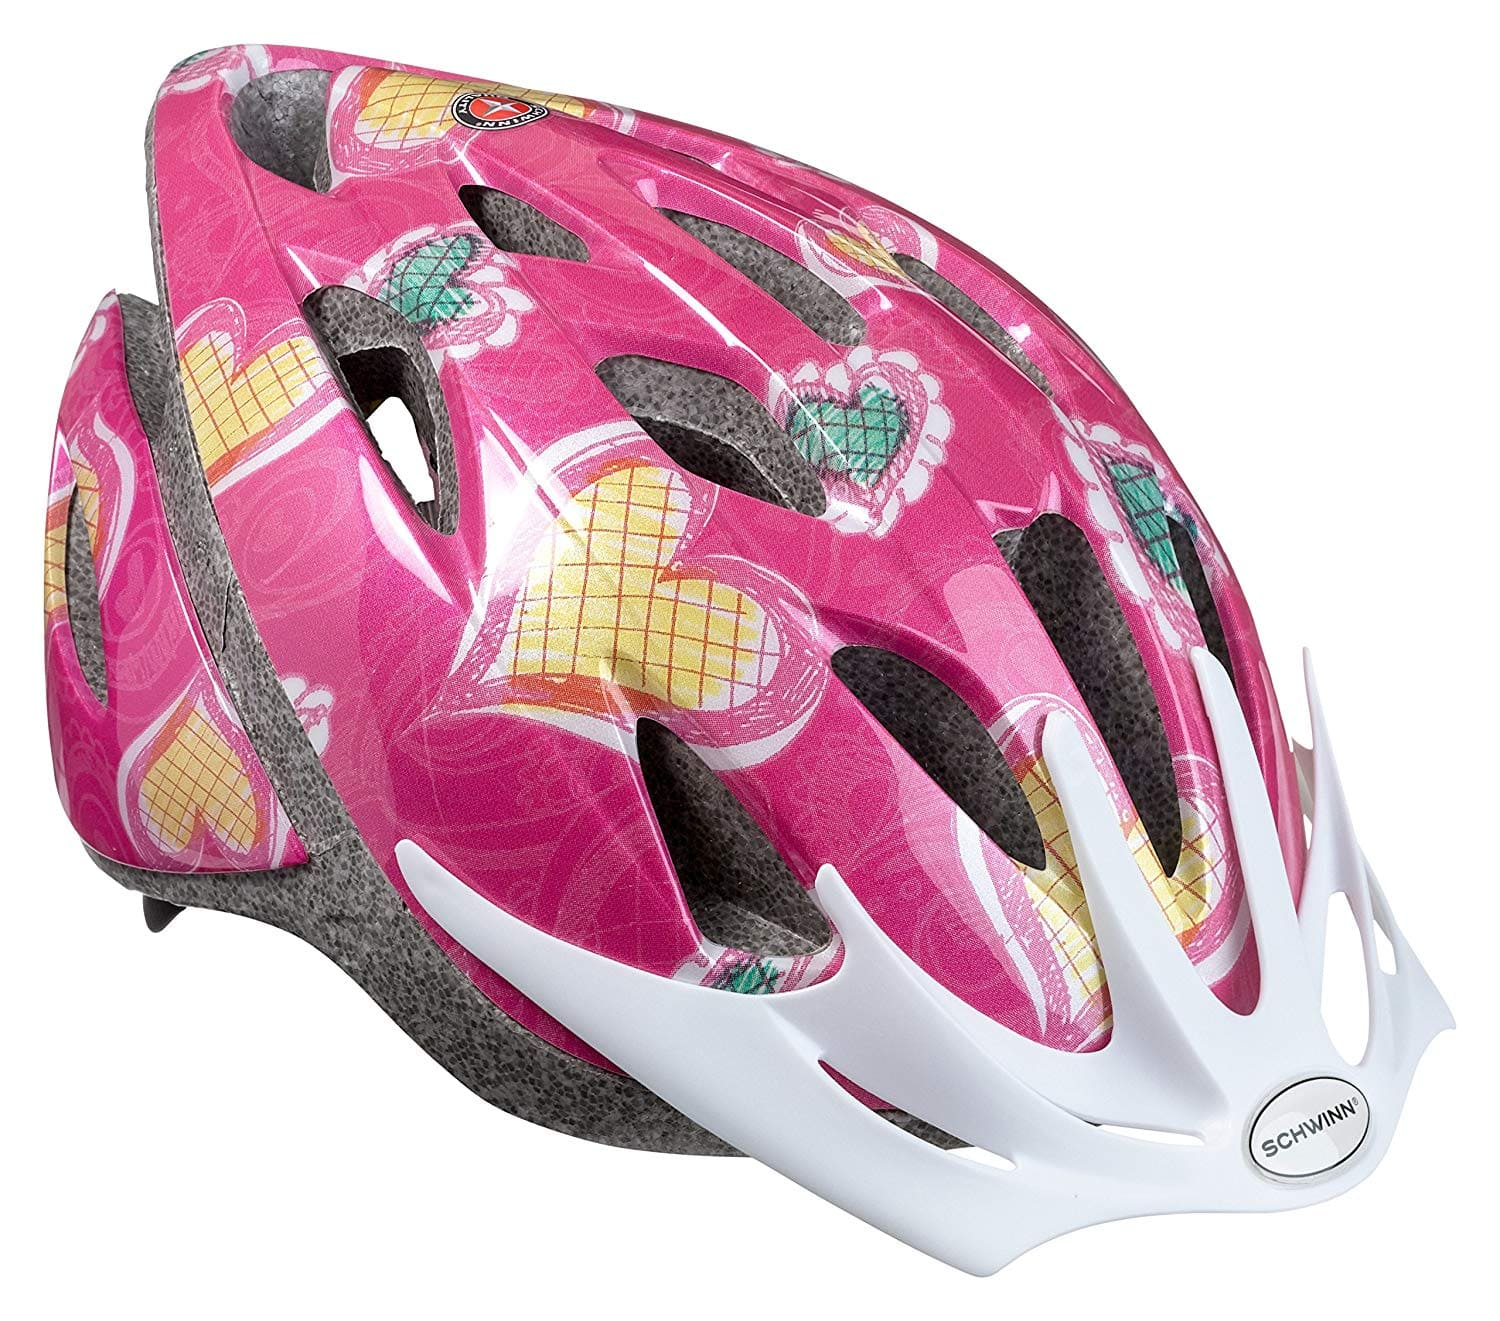 Schwinn Thrasher Girls' Lightweight Microshell Bicycle Helmet w/ Dial-Fit  Adjustment (Pink/Hearts) $11 88 + Free S&H w/ Prime or orders $25+ ~ Amazon